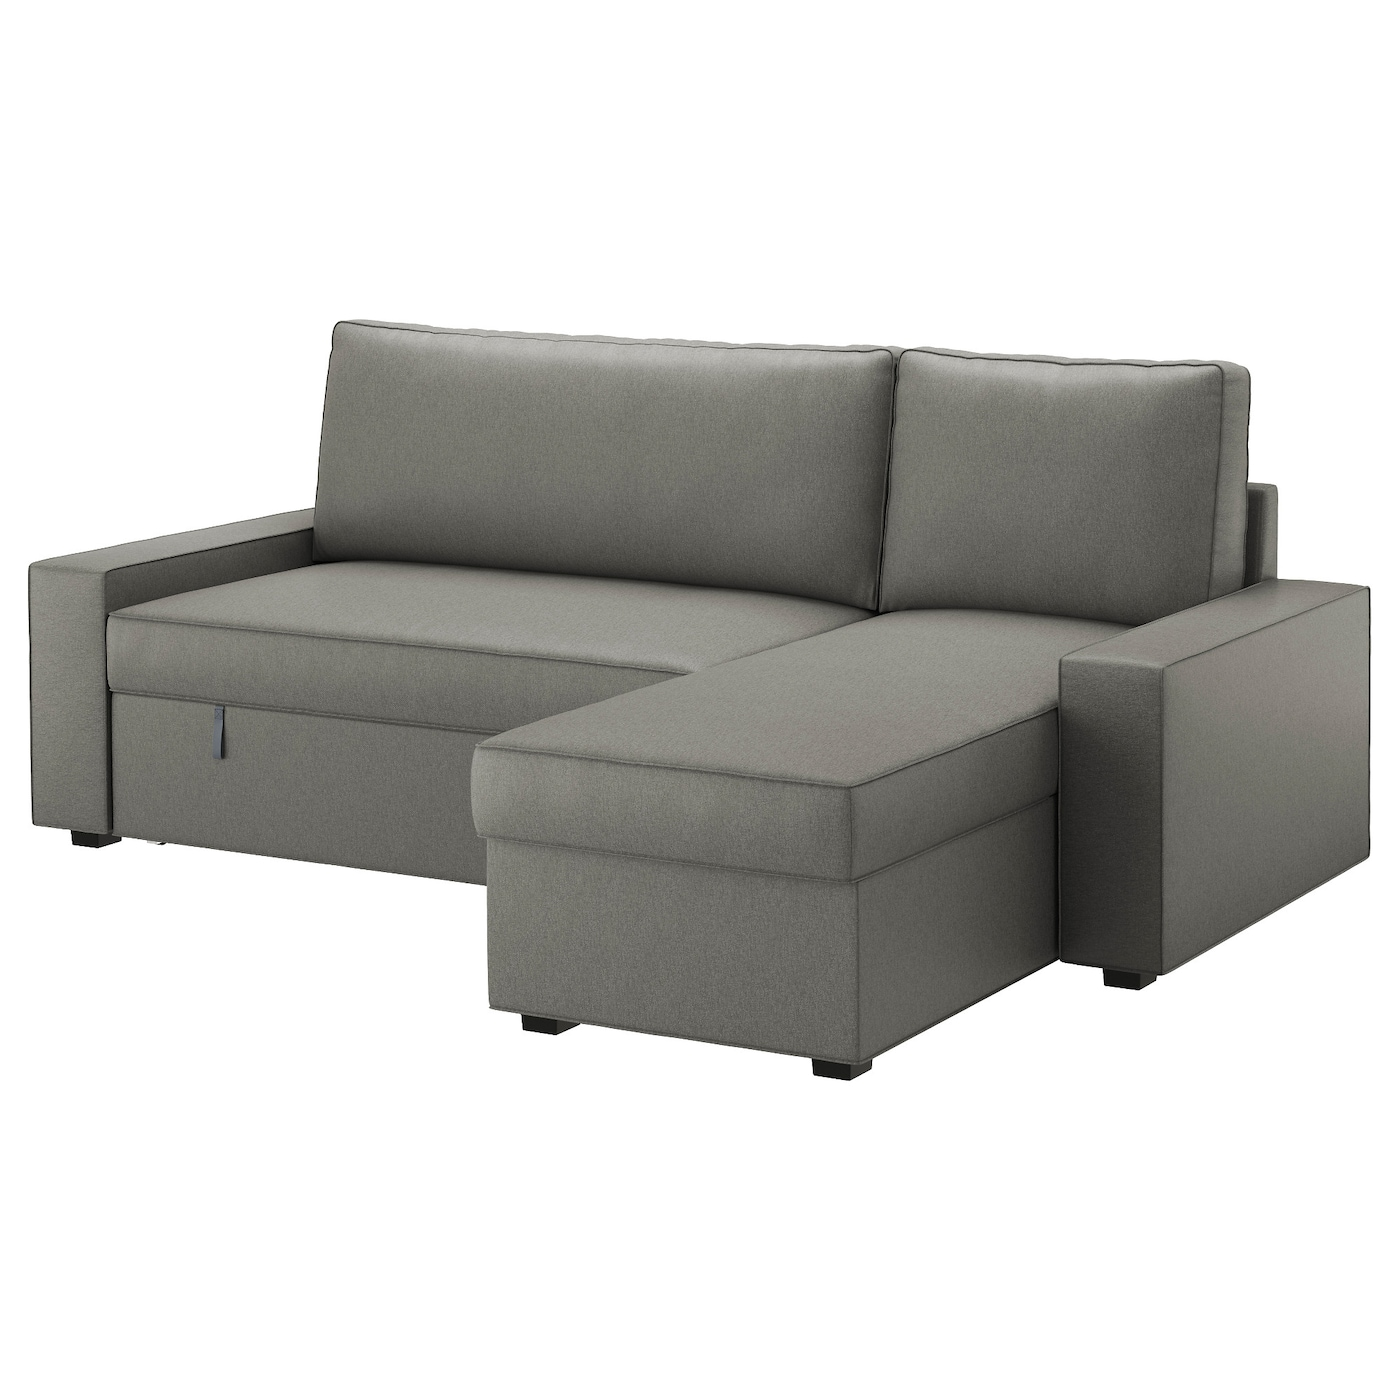 Ikea Vilasund Cover Sofa Bed With Chaise Longue